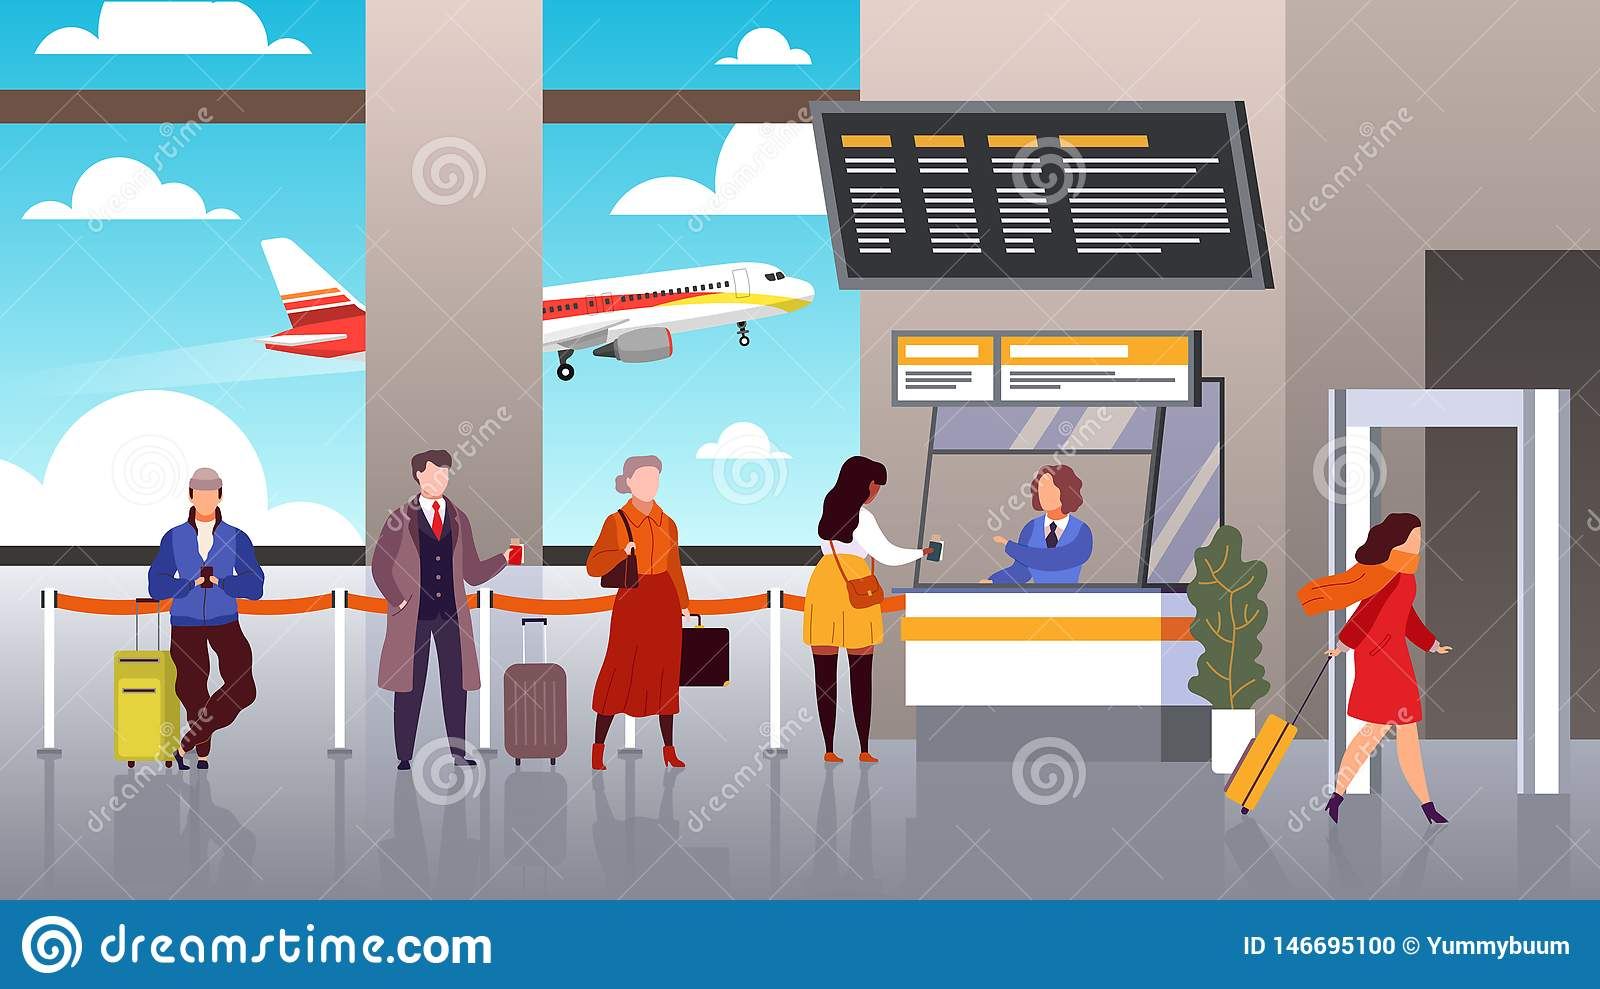 Airport registration. People queue departure passengers in line baggage register flight check terminal tourism travel